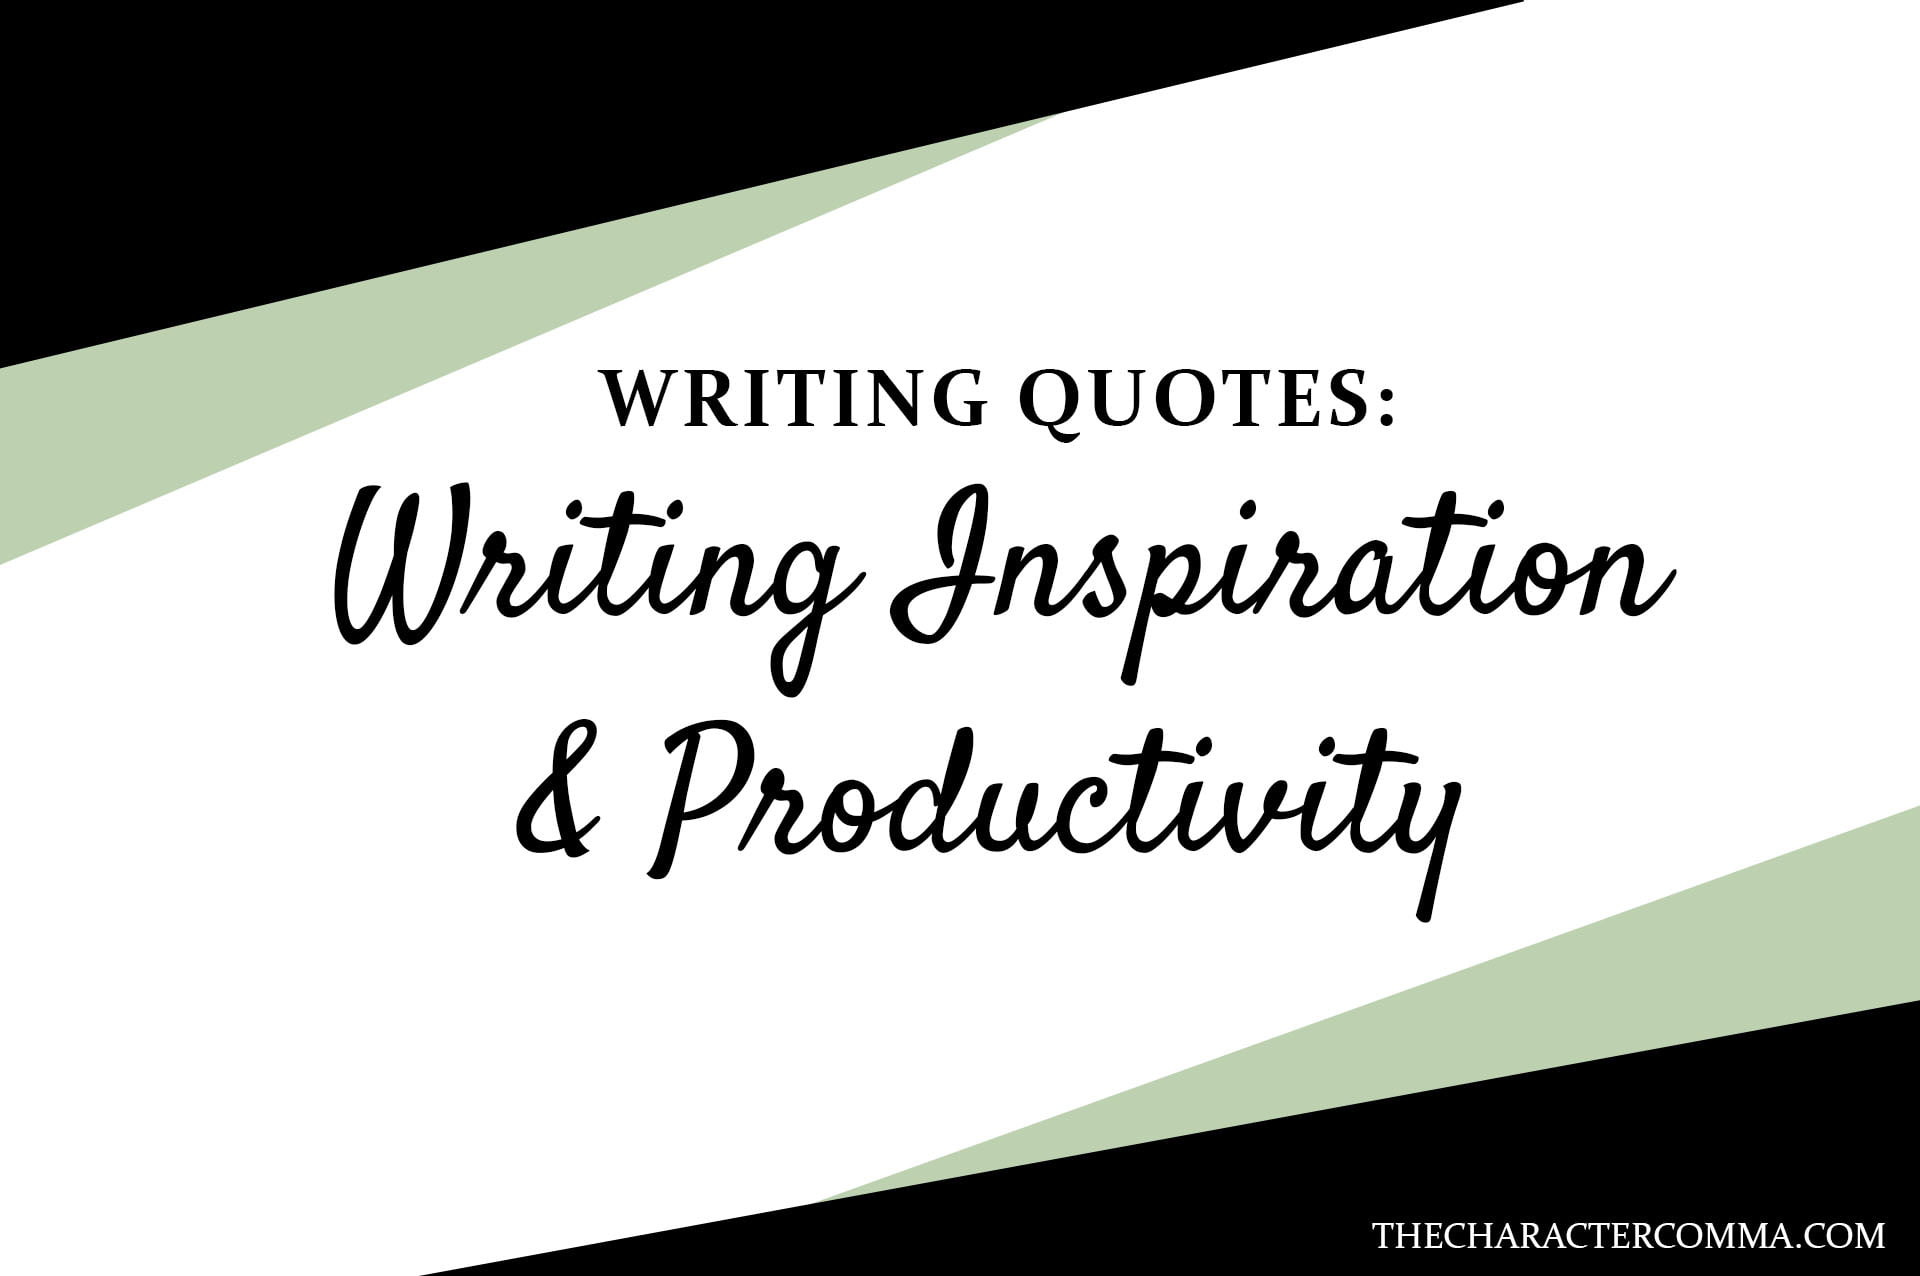 Writing Inspiration and Productivity Quotes